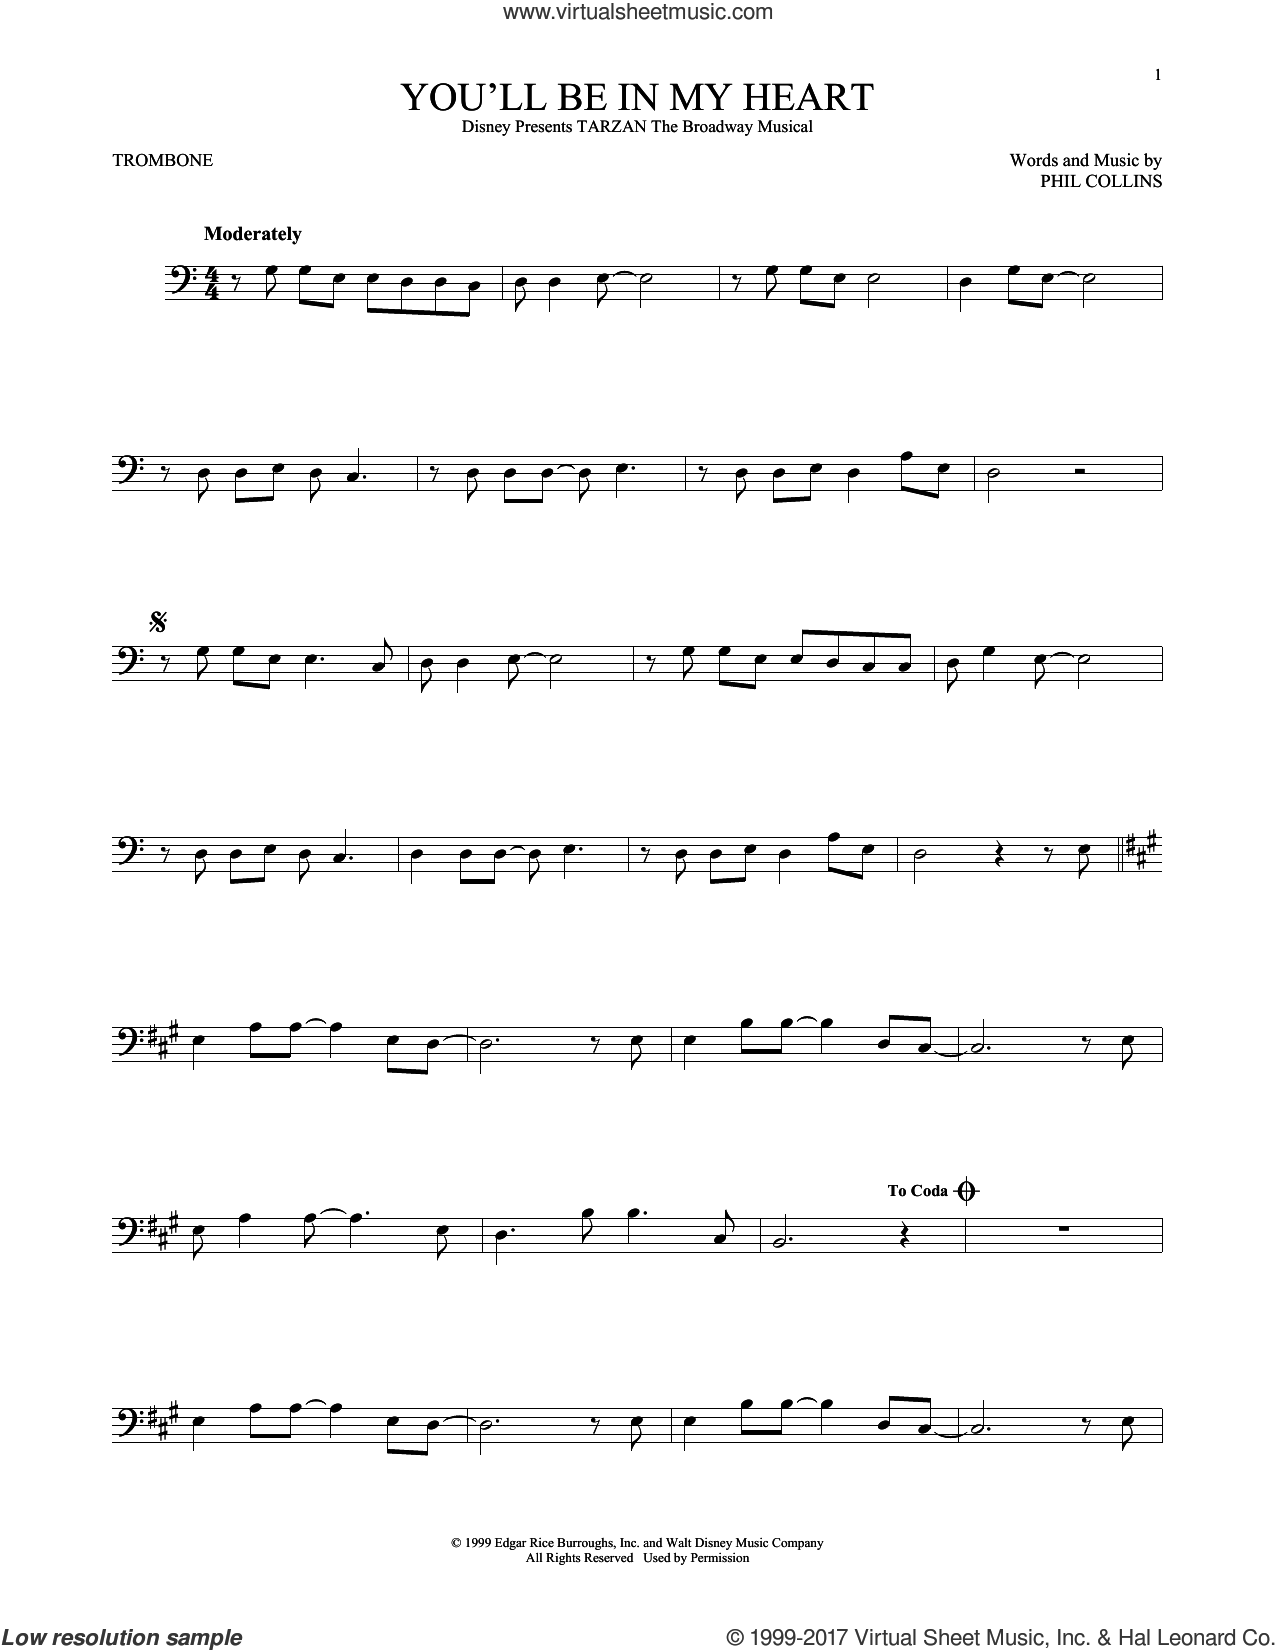 You'll Be In My Heart sheet music for trombone solo by Phil Collins, intermediate skill level